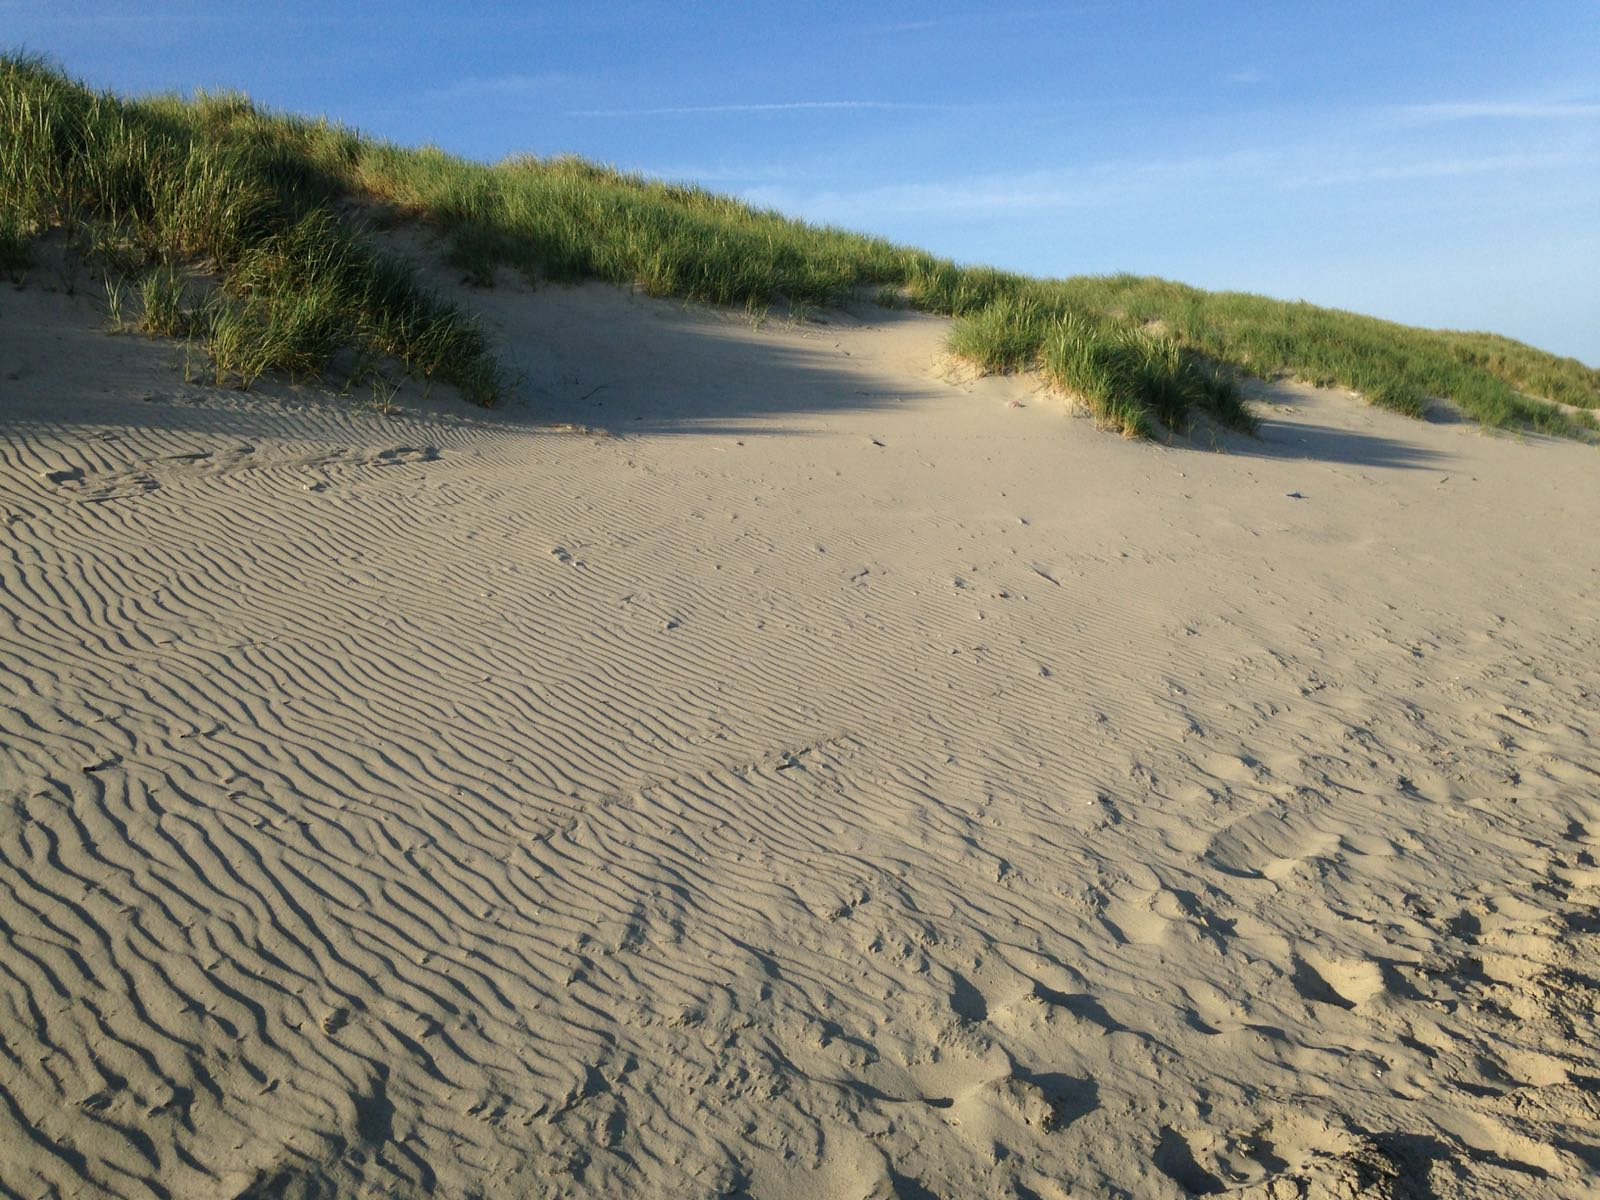 http://www.nordsee-chalet.com/wp-content/uploads/2017/03/IMG-20170218-WA0032.jpg